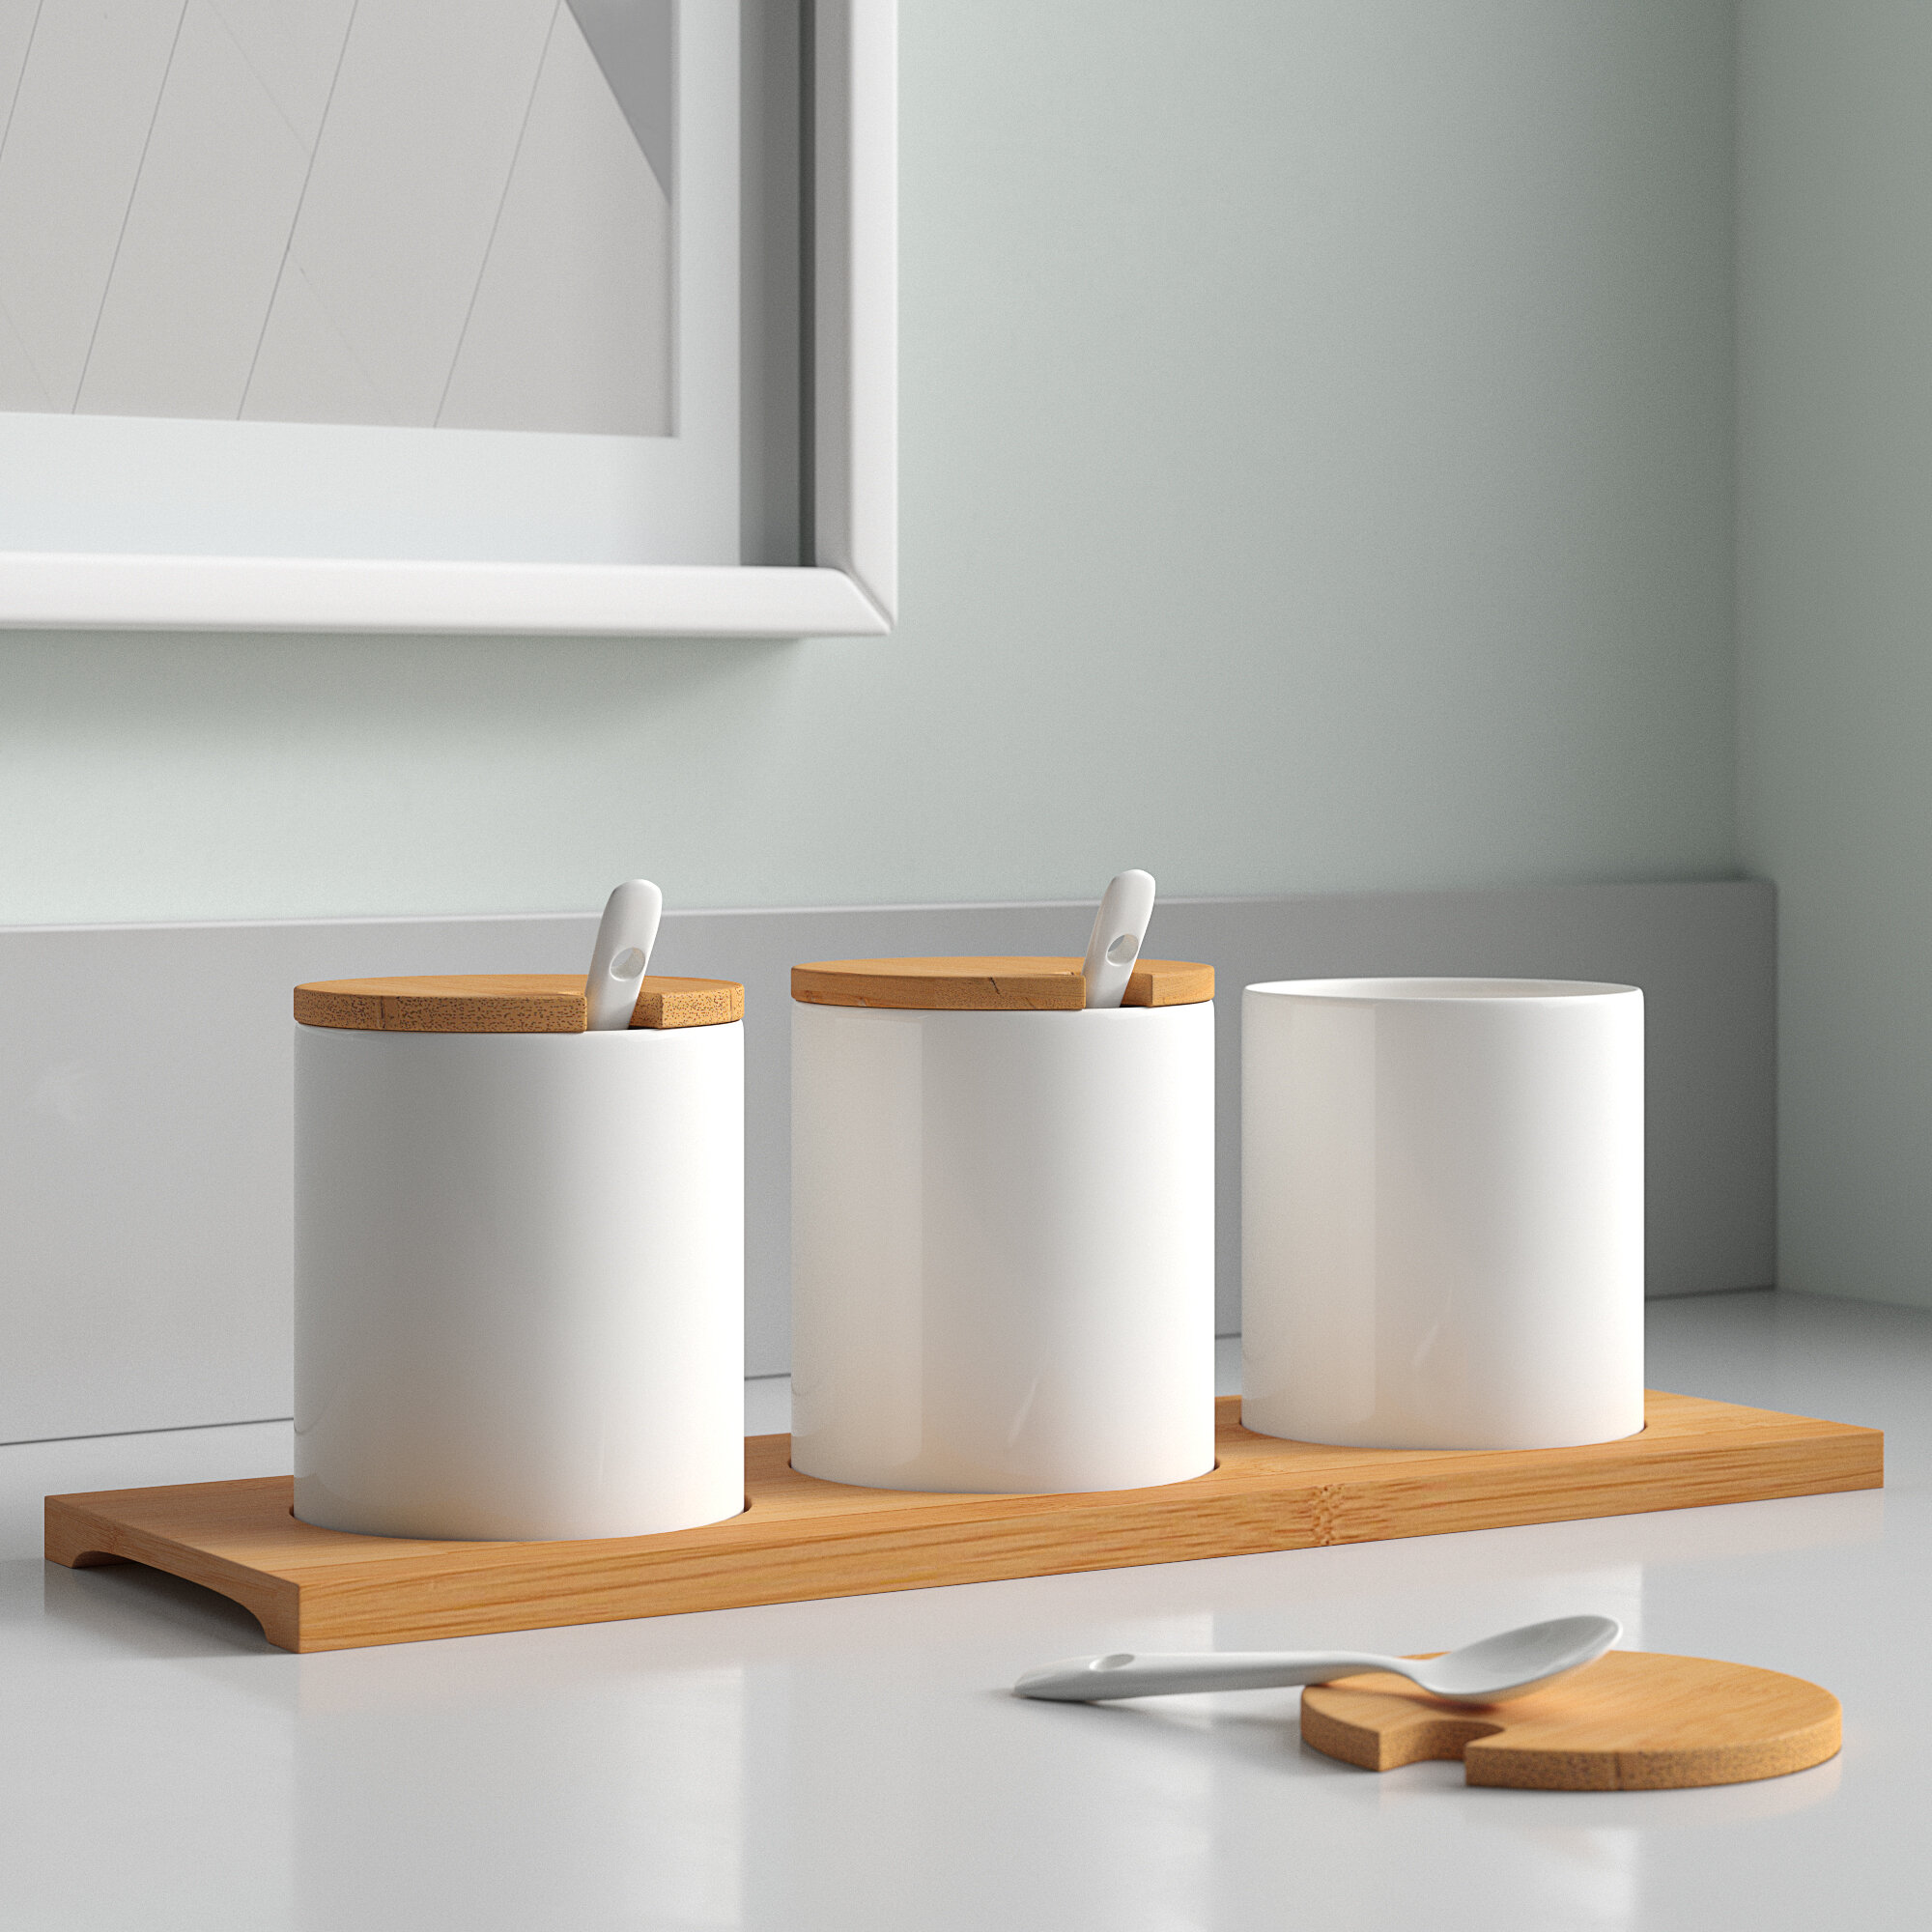 Wood Kitchen Canisters Jars You Ll Love In 2021 Wayfair